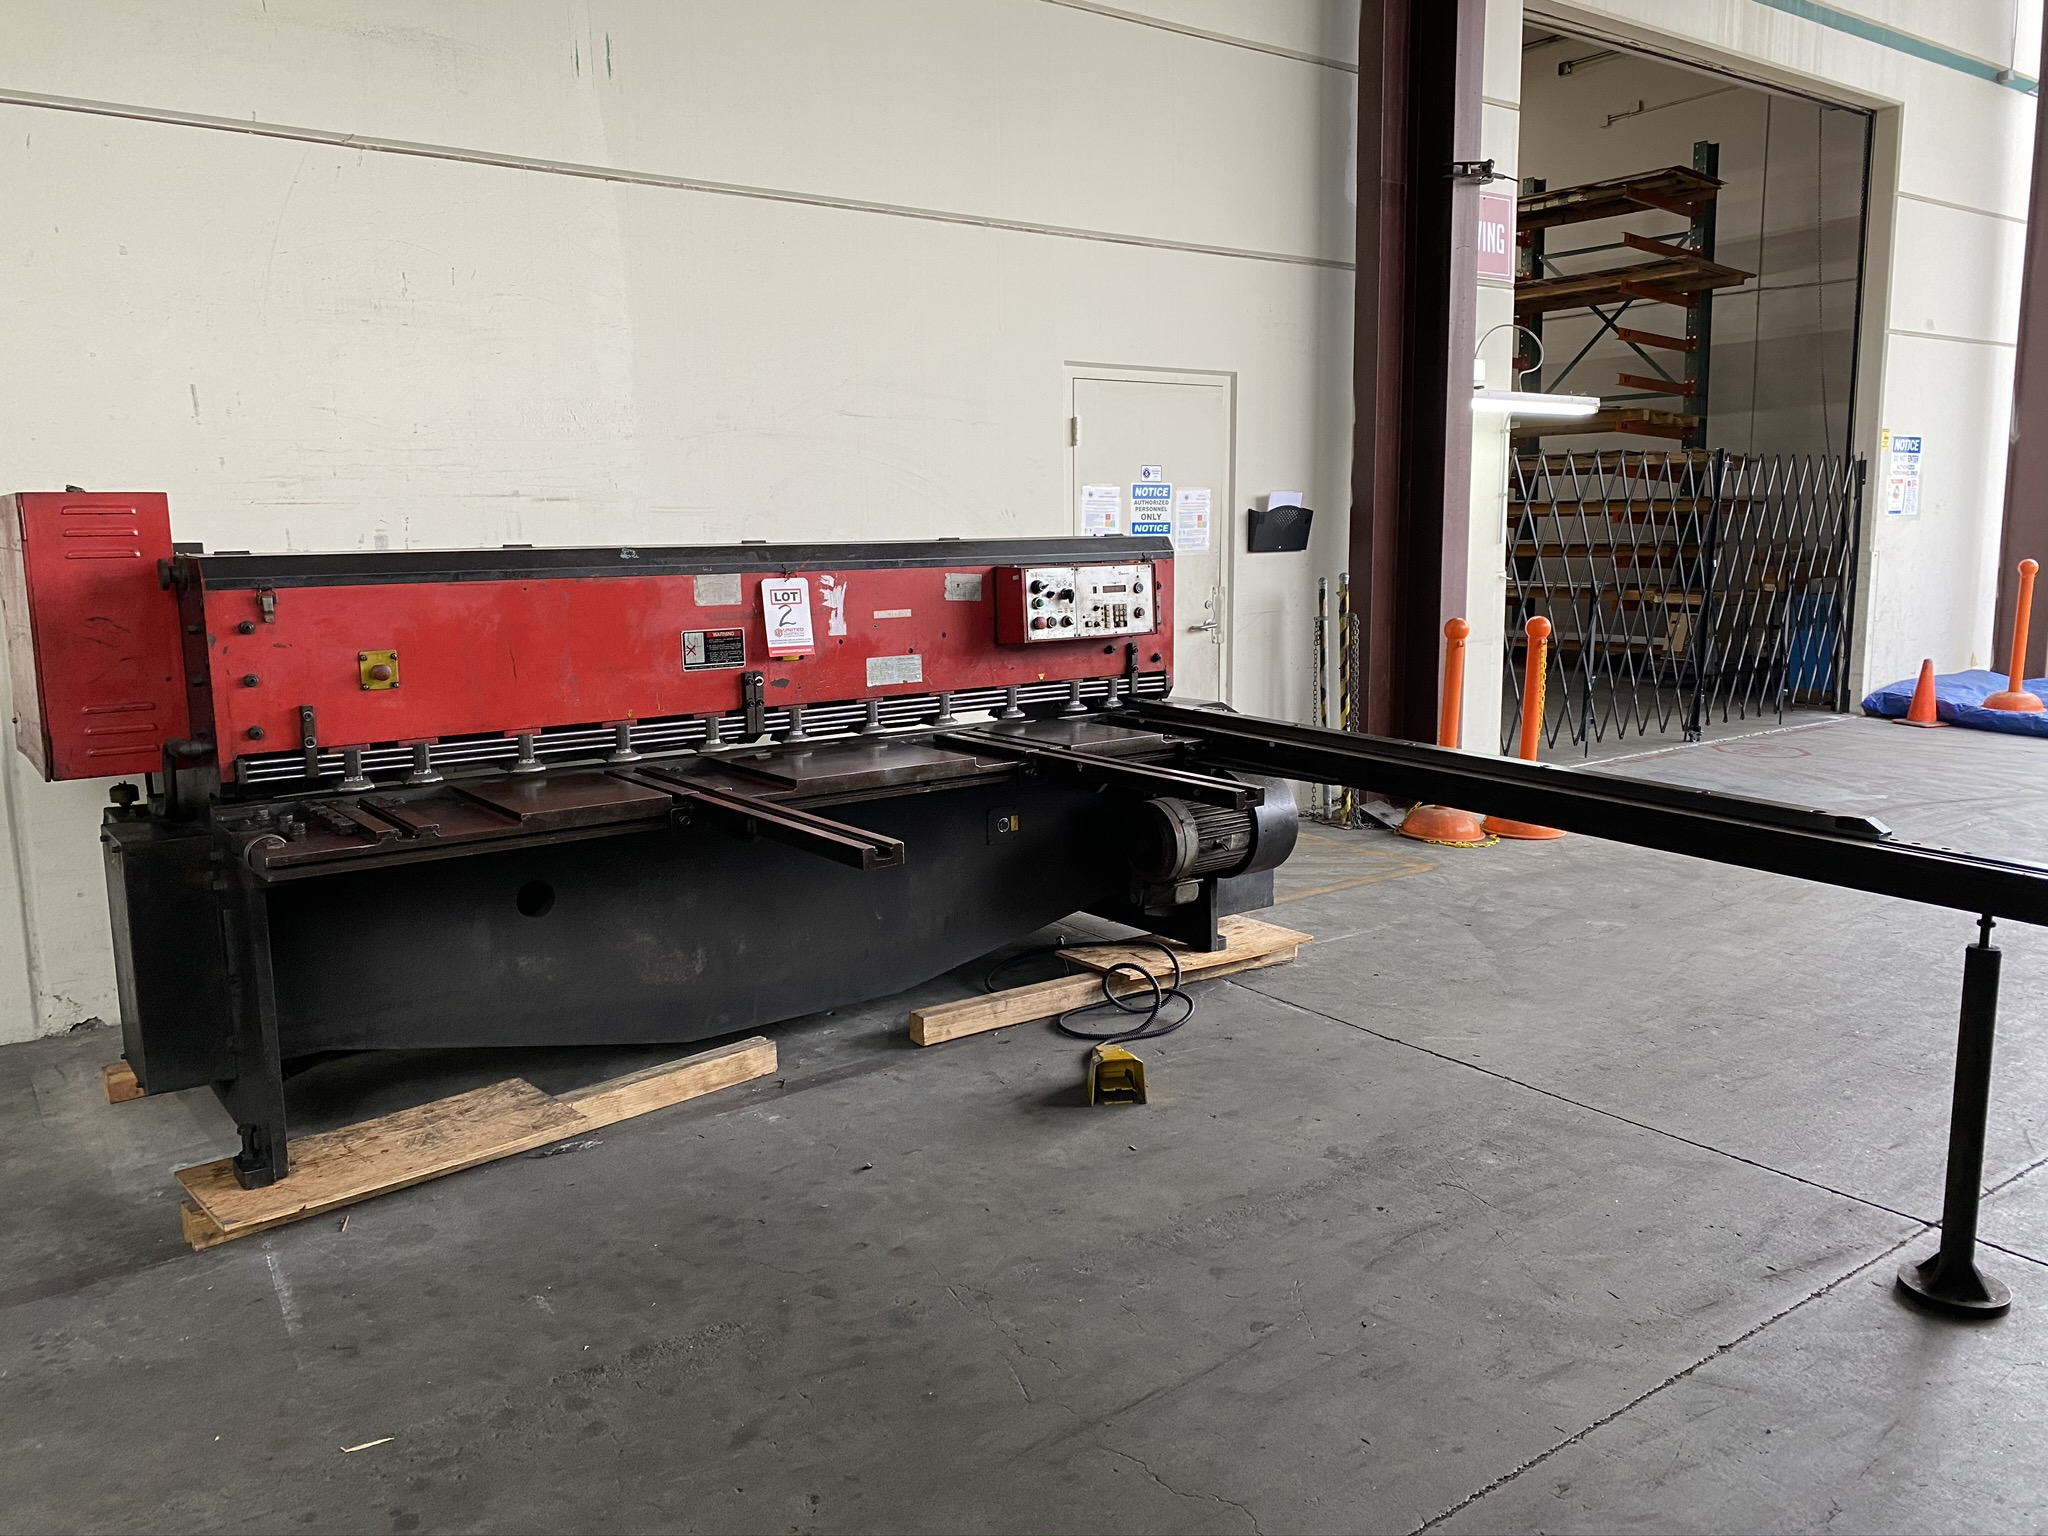 1990 AMADA M-2560 SHEAR, 2500 MM, LENGTH, 6 MM THICKNESS, MECHANICAL, SHEET SUPPORTS